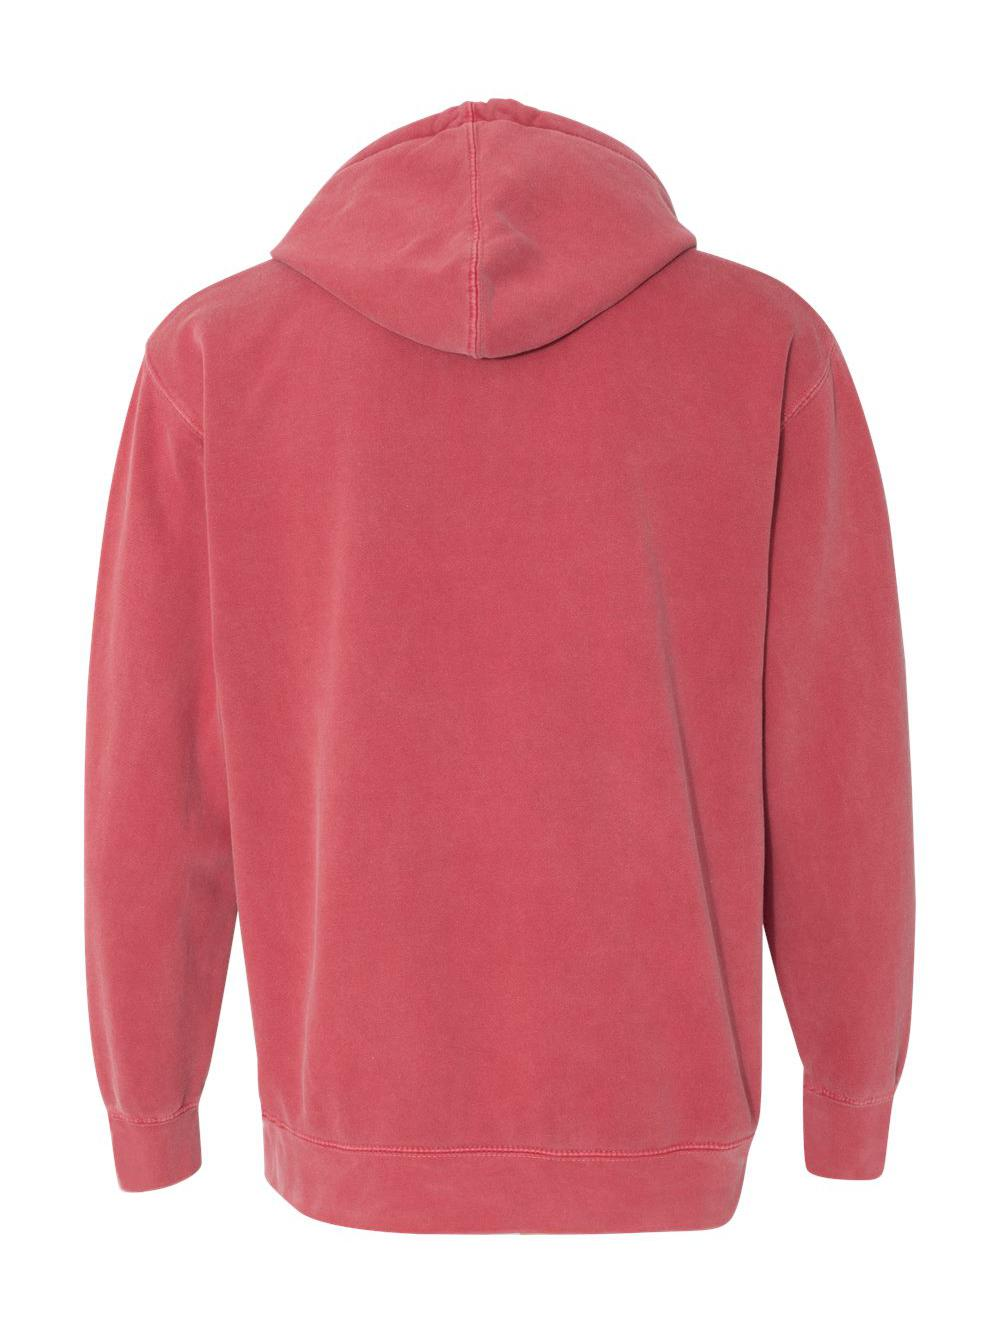 Comfort-Colors-Garment-Dyed-Hooded-Pullover-Sweatshirt-1567 thumbnail 10